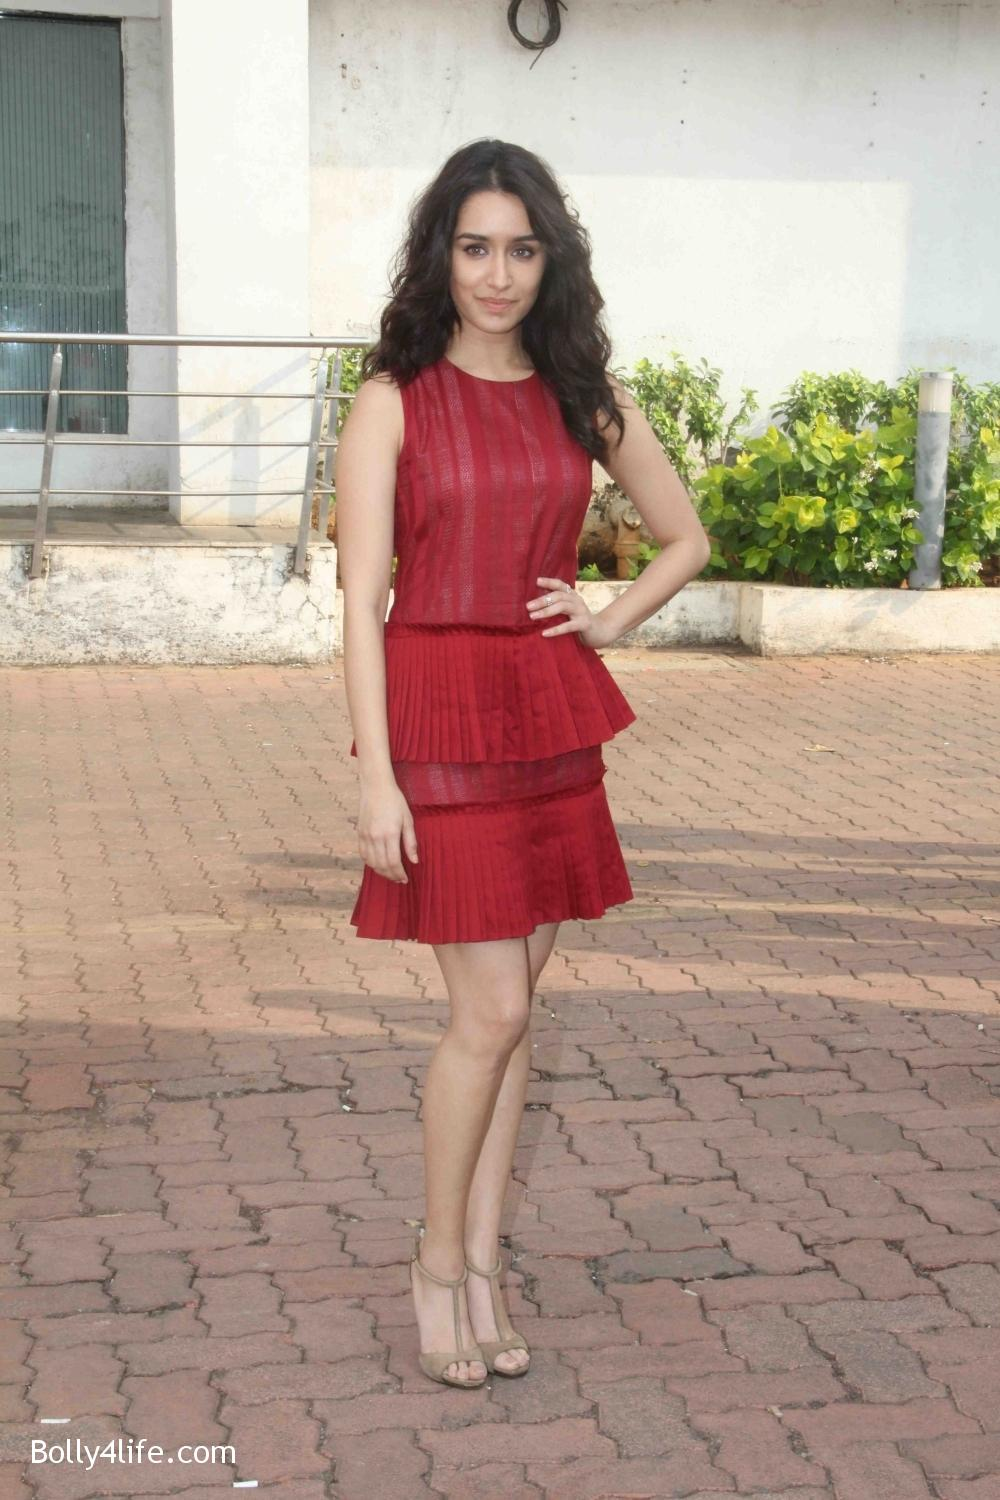 Shraddha-Kapoor-during-the-promotion-of-film-Ok-Jaanu-on-the-sets-Star-Plus-singing-reality-show-Dil-Hai-Hindustani-3.jpg